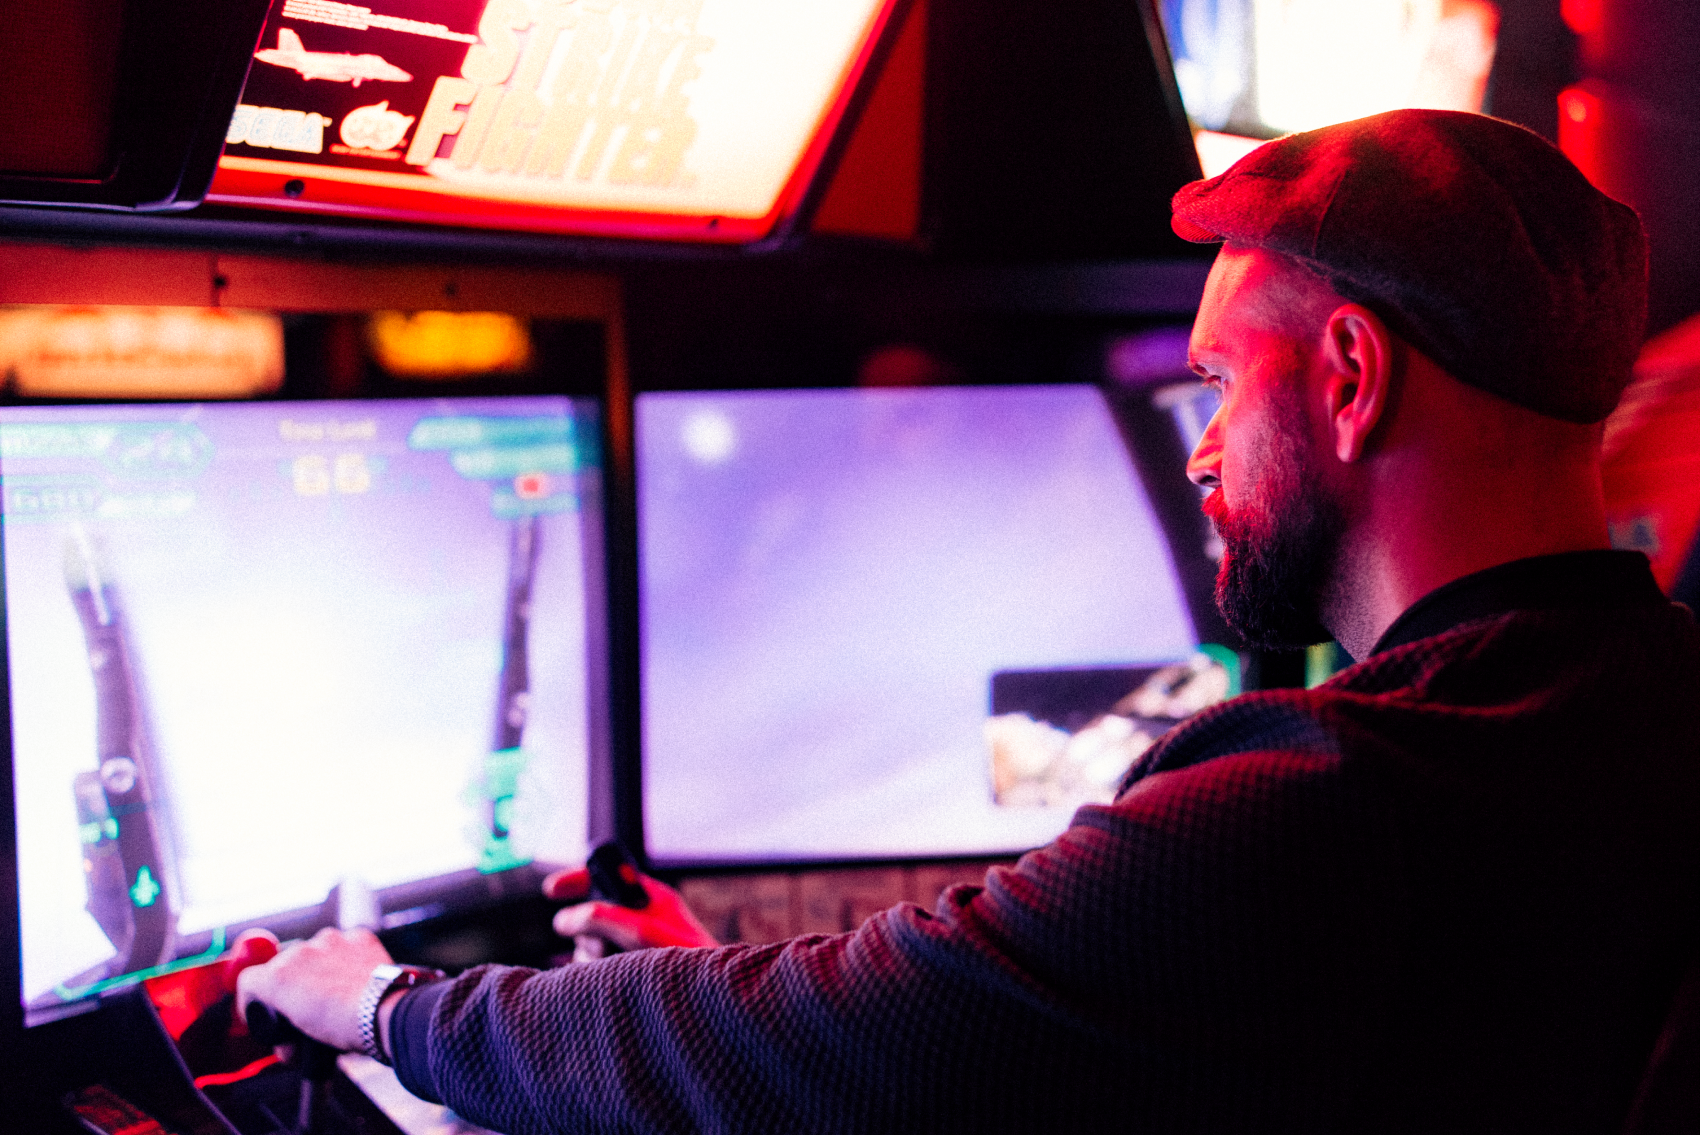 A man in a hat playing a first person shooter game at an arcade.